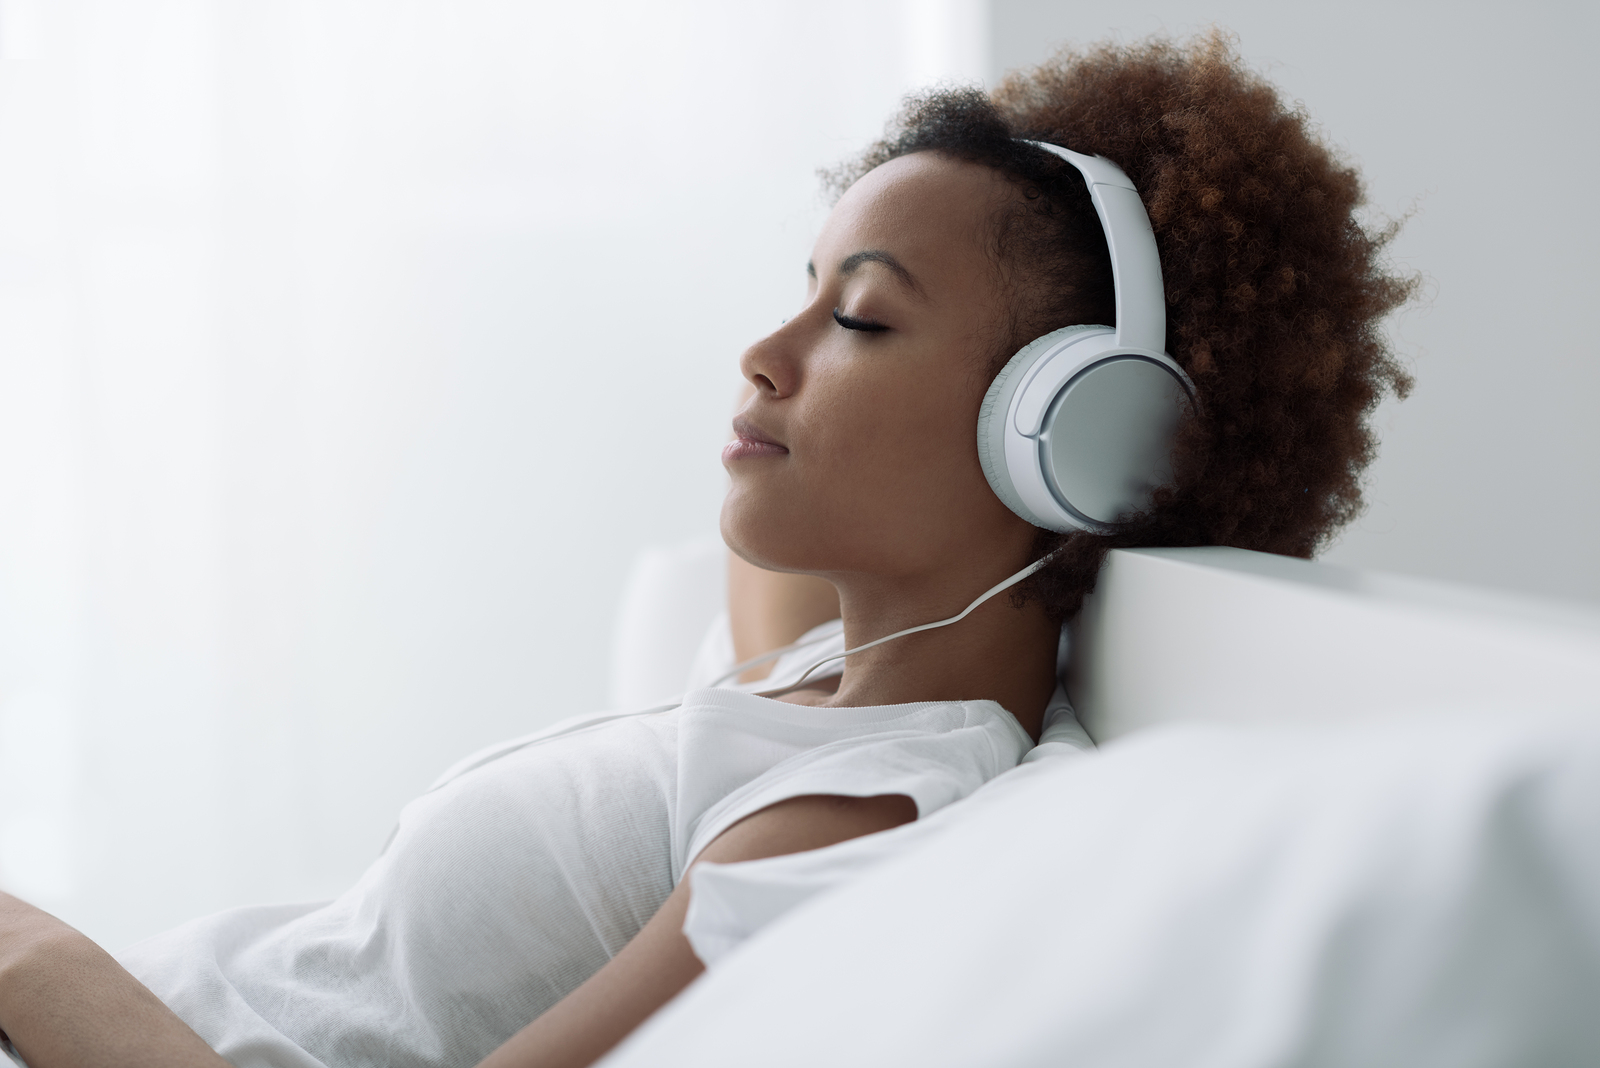 bigstock-Woman-Relaxing-And-Listening-T-169052453